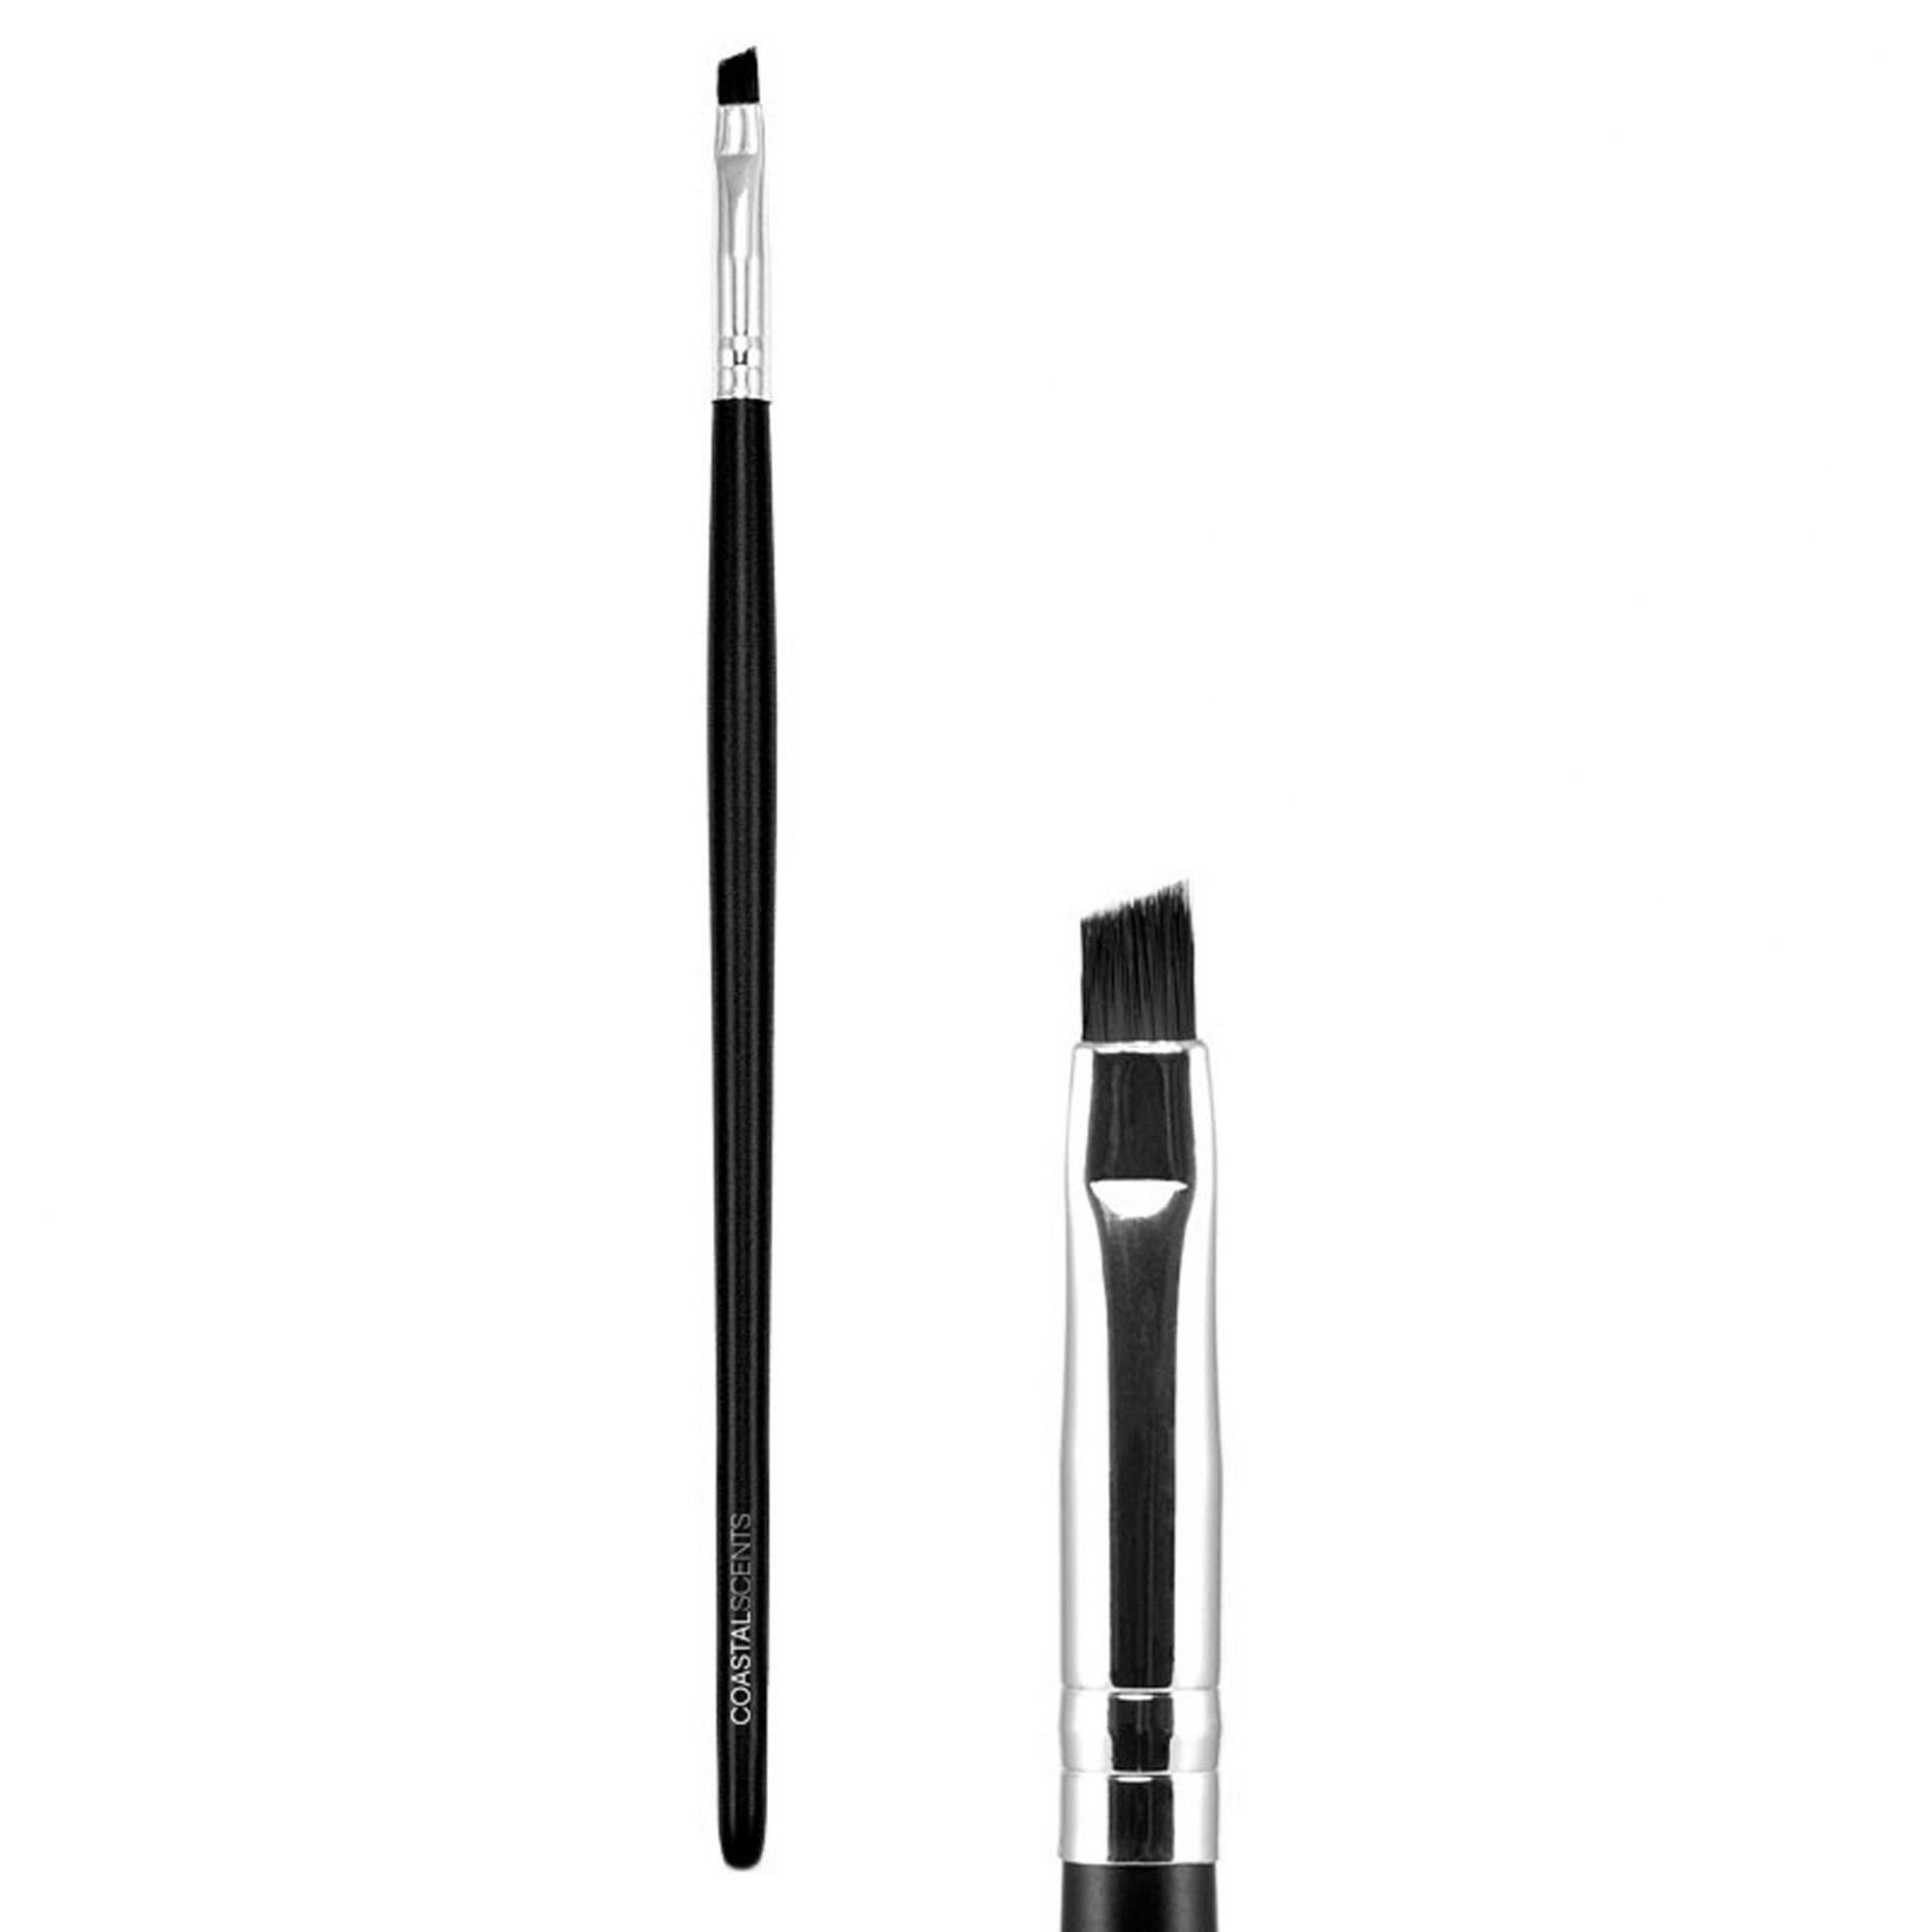 Coastal Scents | S17 Angled liner Brush Smoll